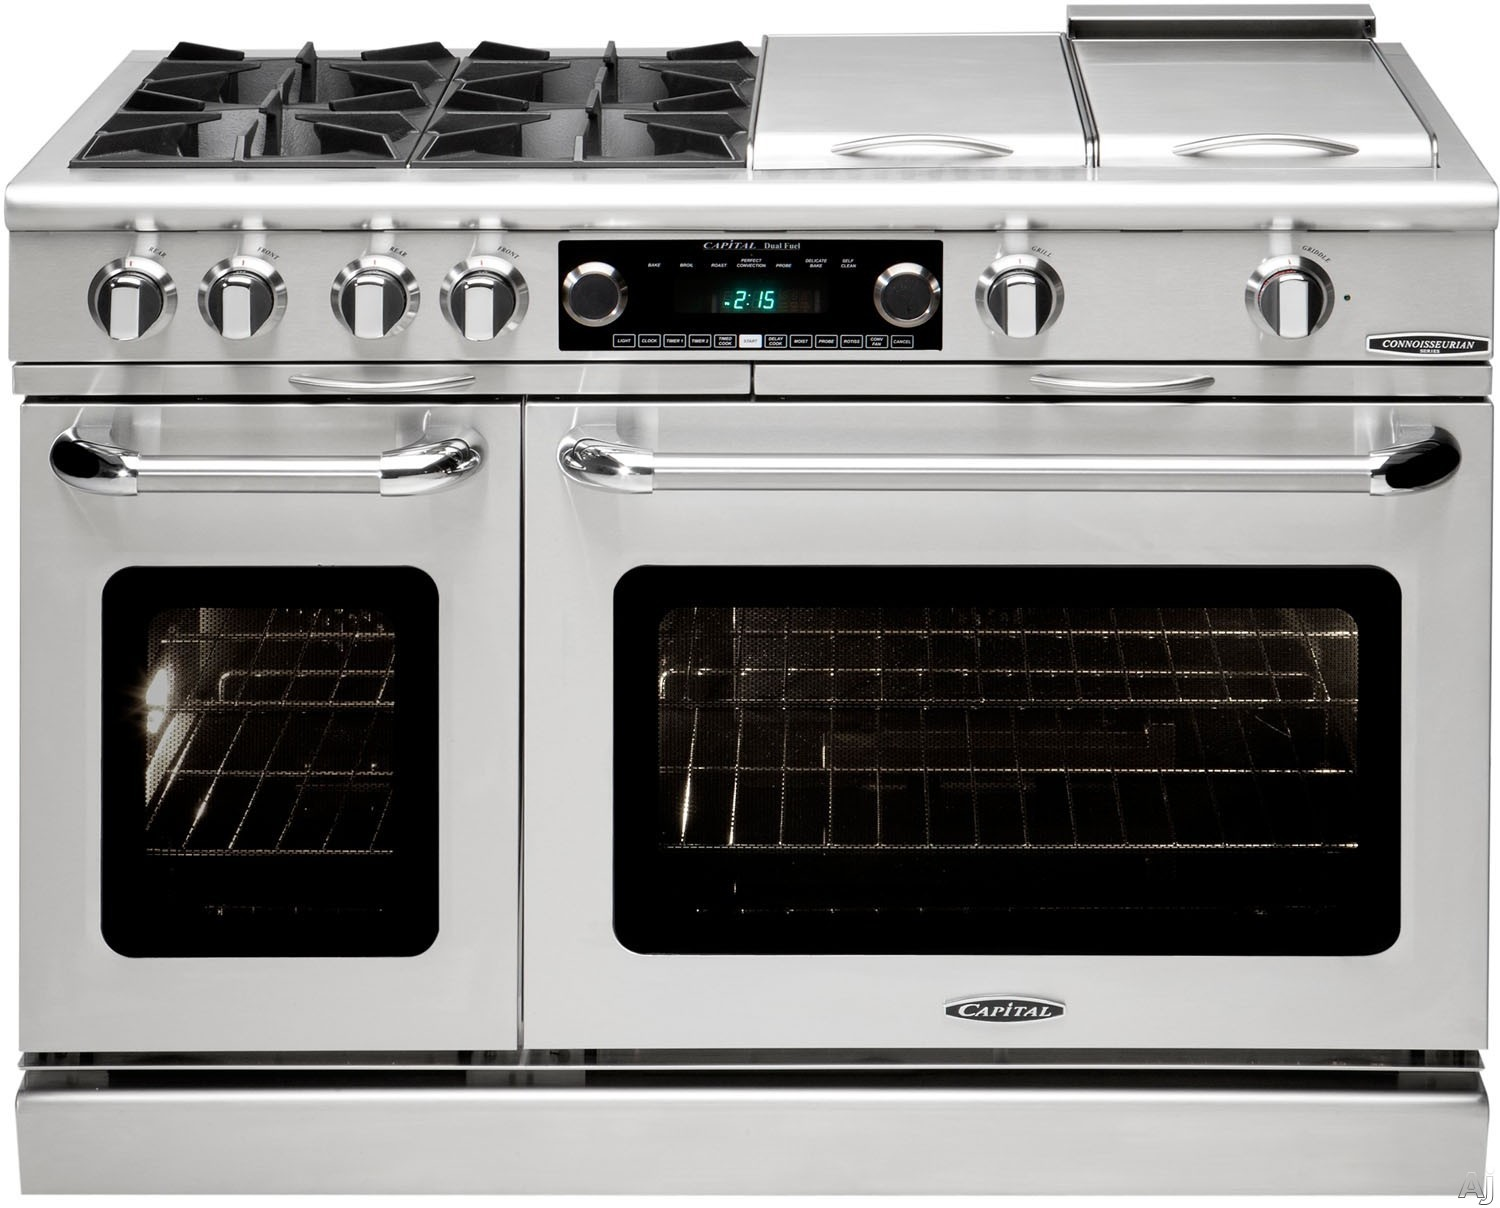 "Capital Connoisseurian Series CSB488 48 Inch Pro-Style Dual Fuel Range with 8 Sealed Burners, Dual Kitchen Timers, Moto-Rotisâ""¢ Rotisserie, Meat Probe, Dual Air-Flow Convection, Moist Bake Option, 5.4 cu. ft. Primary Oven and 2.4 cu. ft. Secondary Oven"